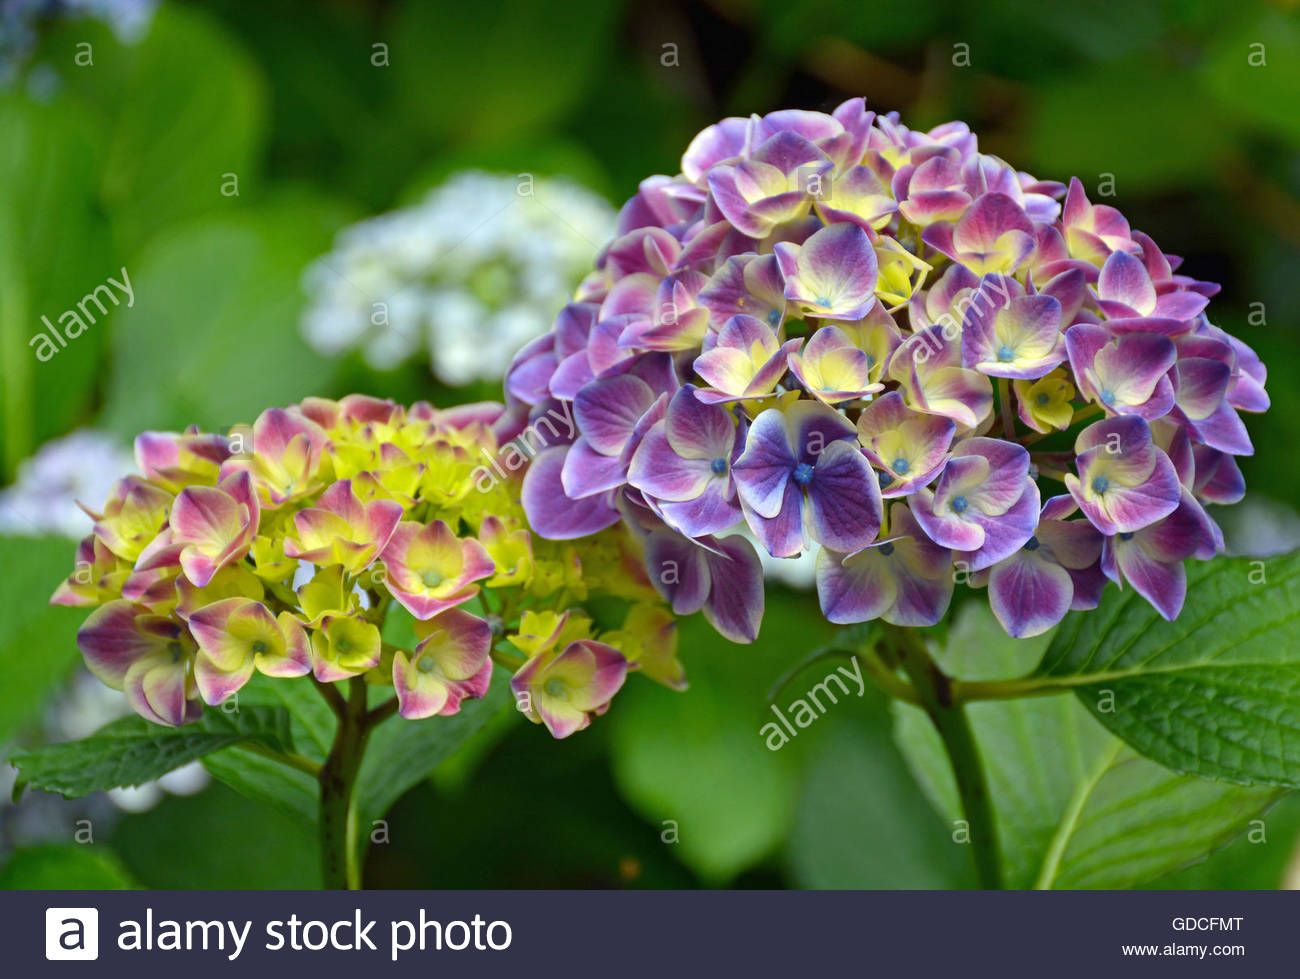 Download This Stock Image Beautiful Pink Yellow And Purple